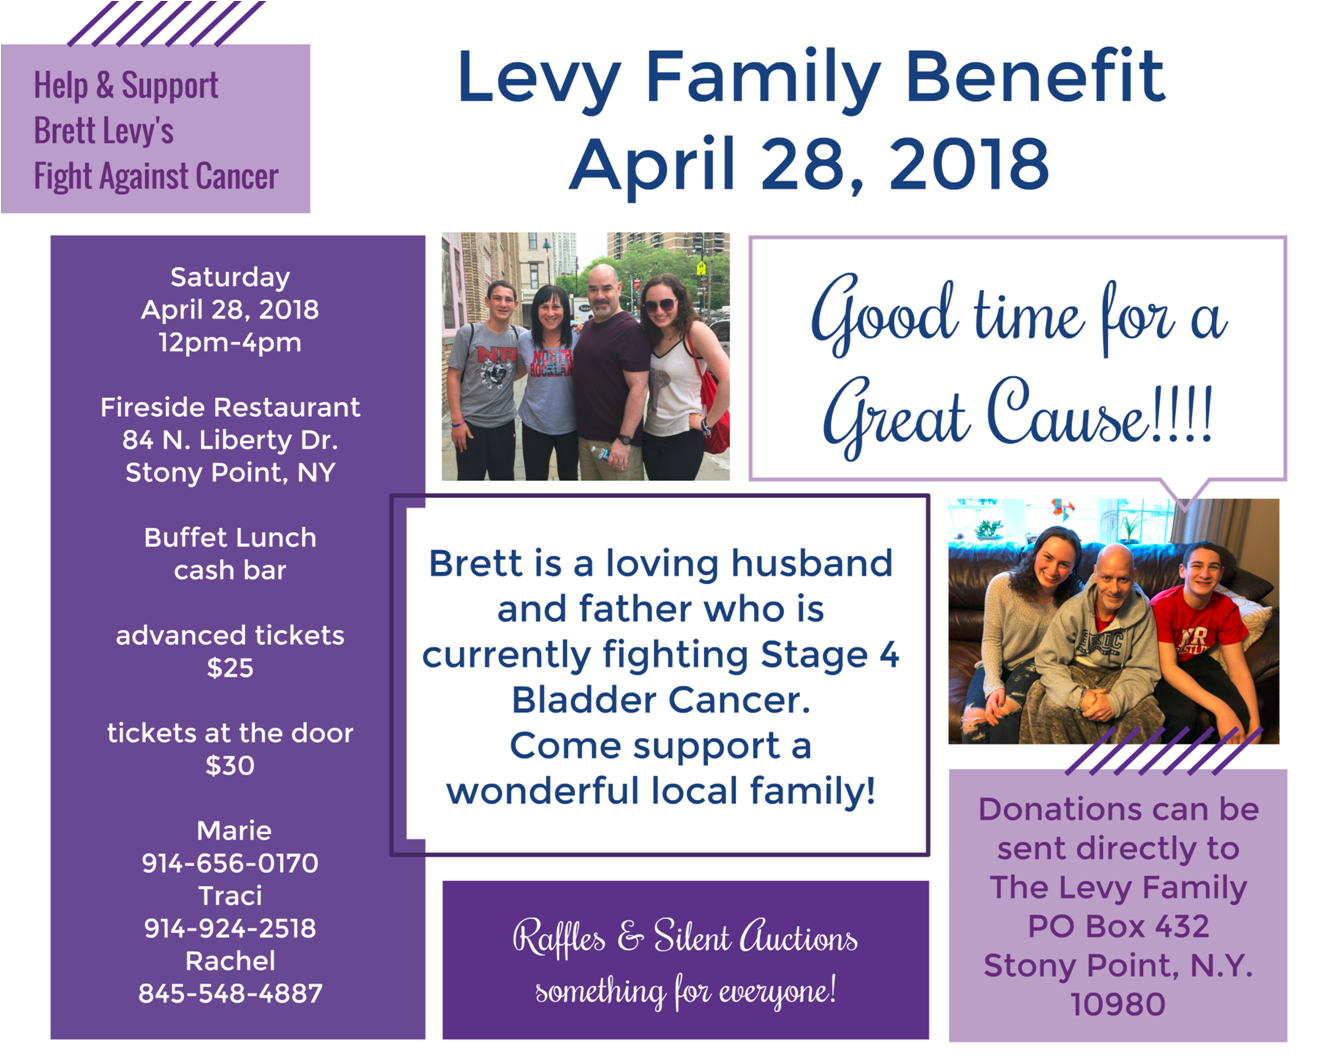 2018 Levy Benefit